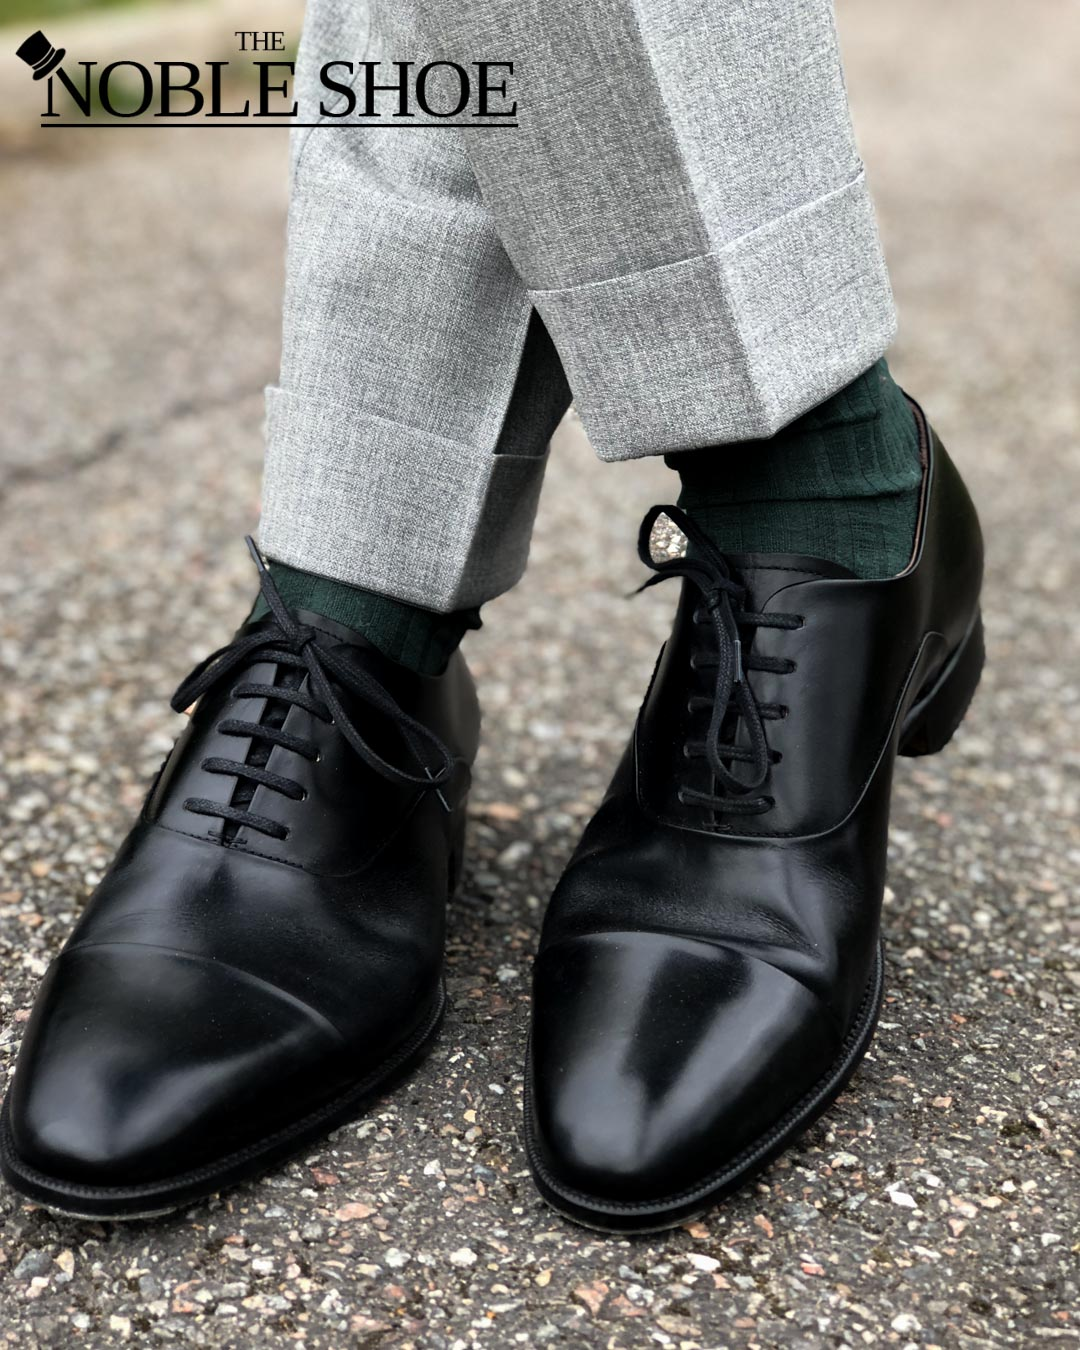 Black Oxfords from The Noble Shoe